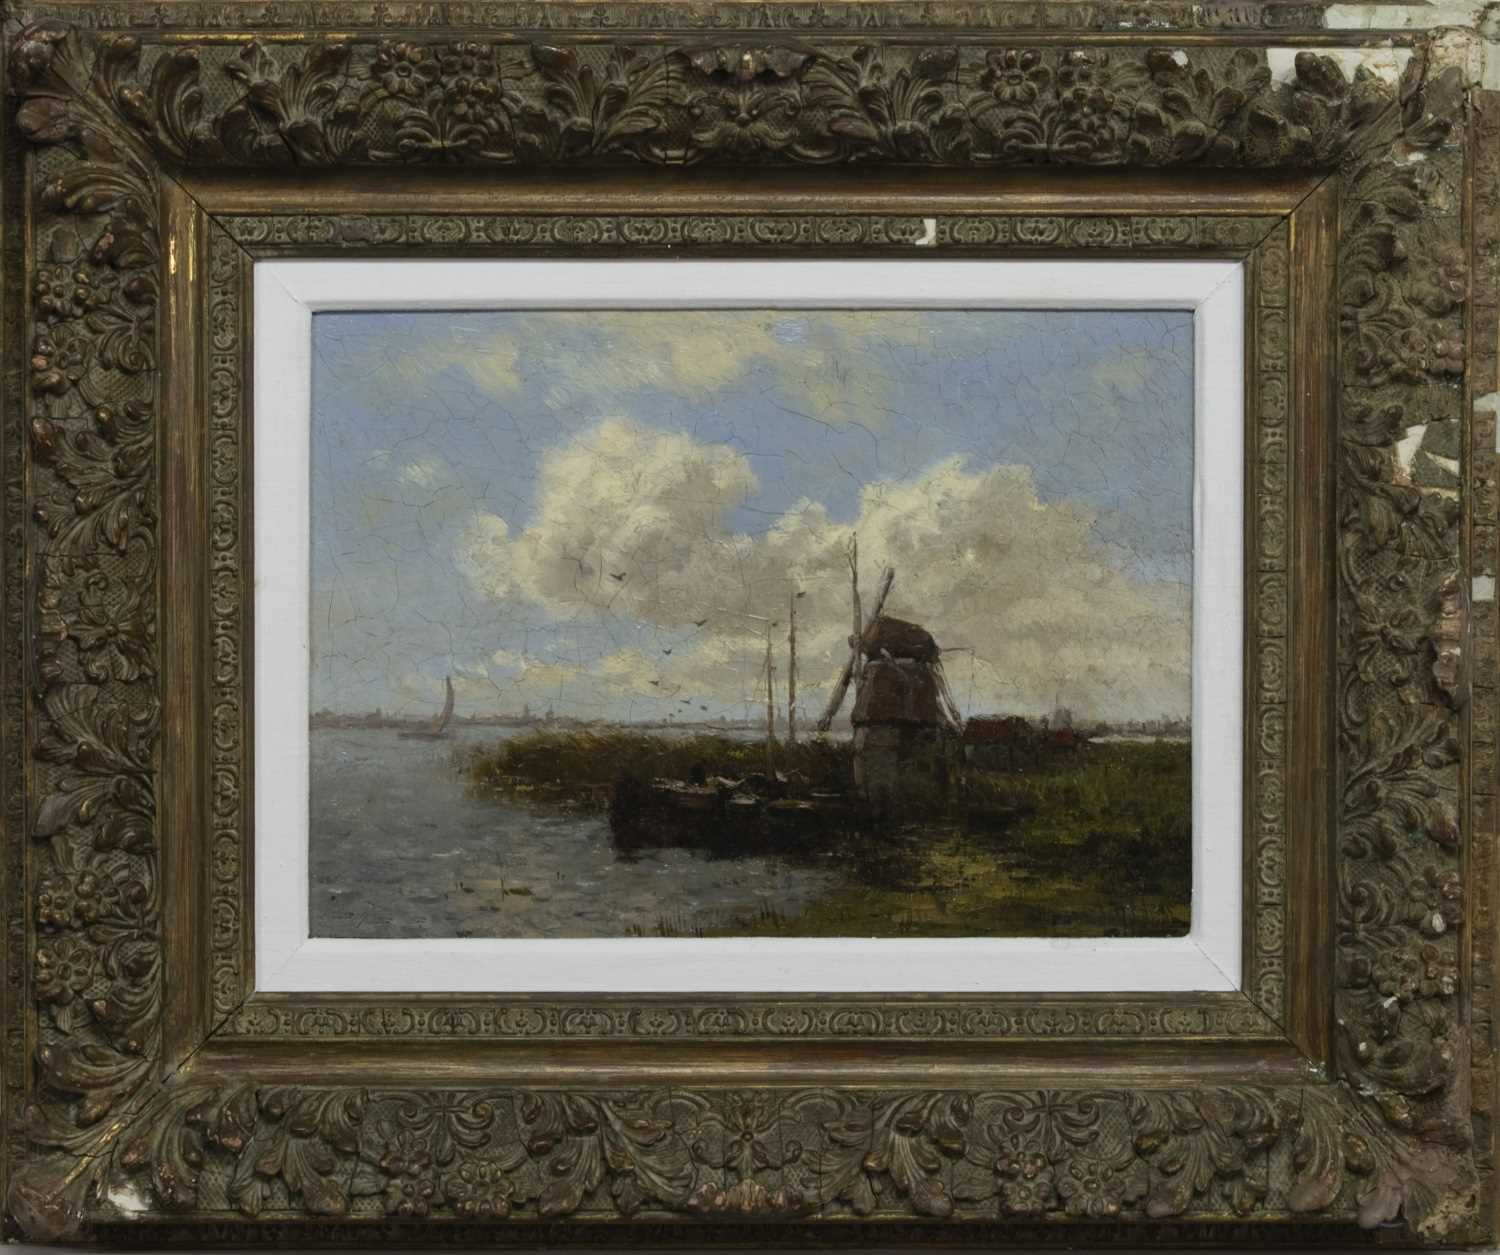 Lot 96 - WINDMILLS AND WATER, AN OIL